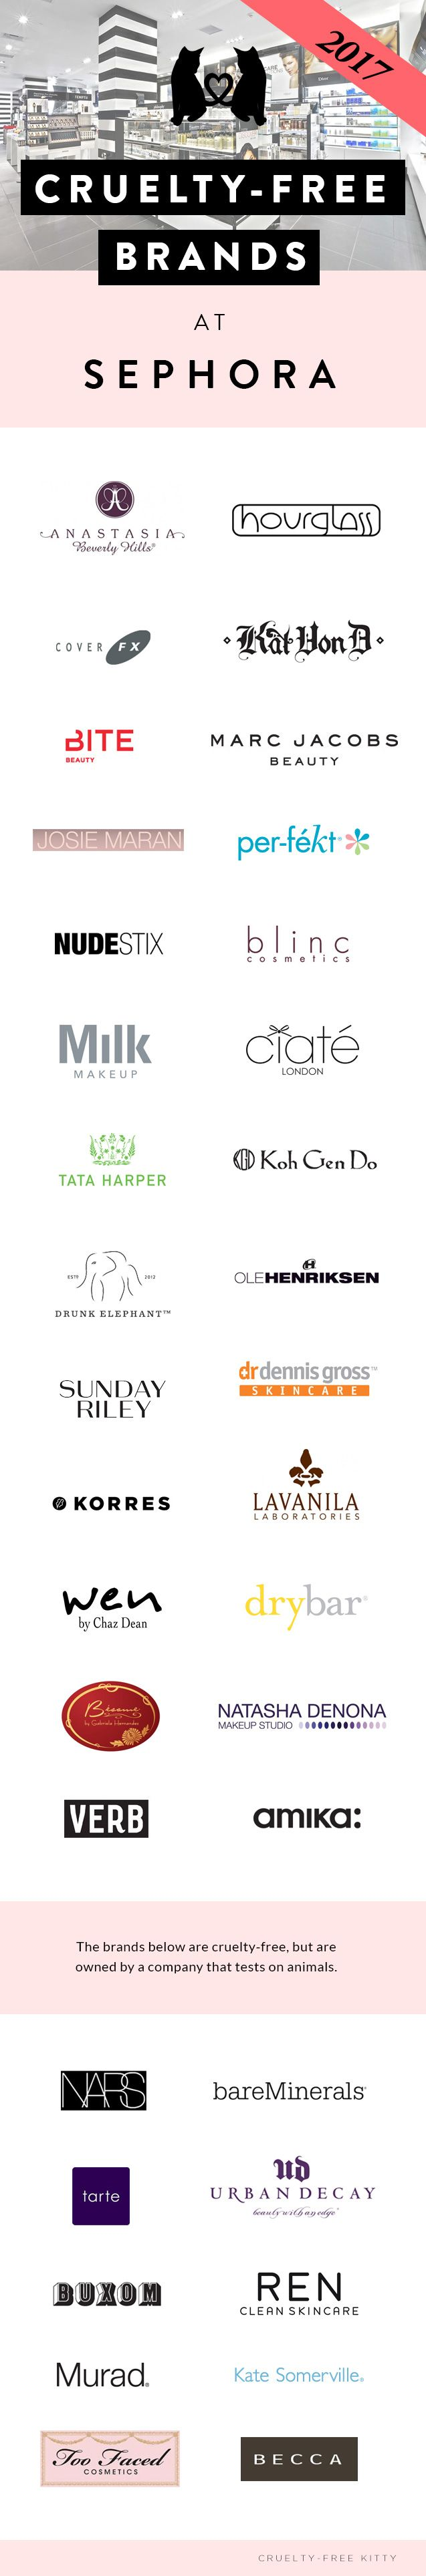 Cruelty free brands at sephora vs owned by animal testing parent companies 2017